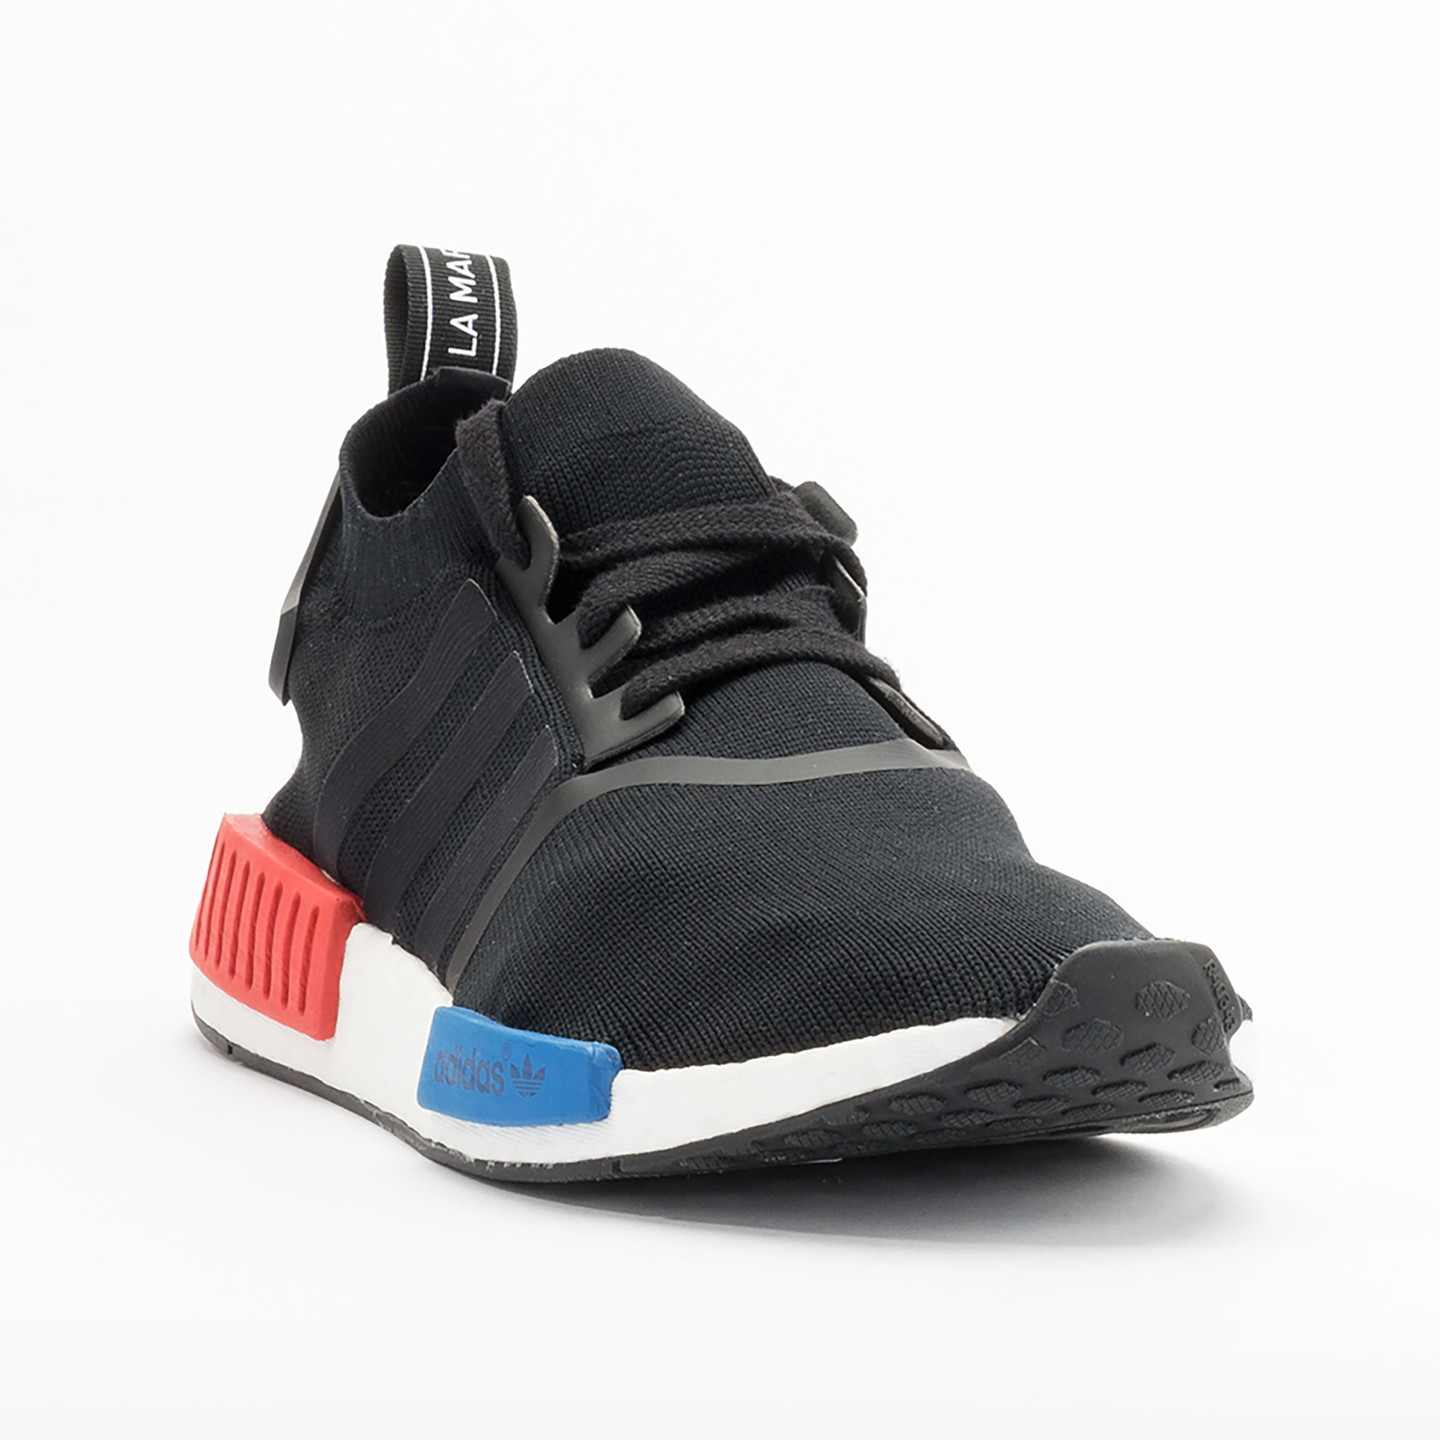 hnlqka Adidas NMD Runner R1 Primeknit Detailed Close Up On Feet w - NMD